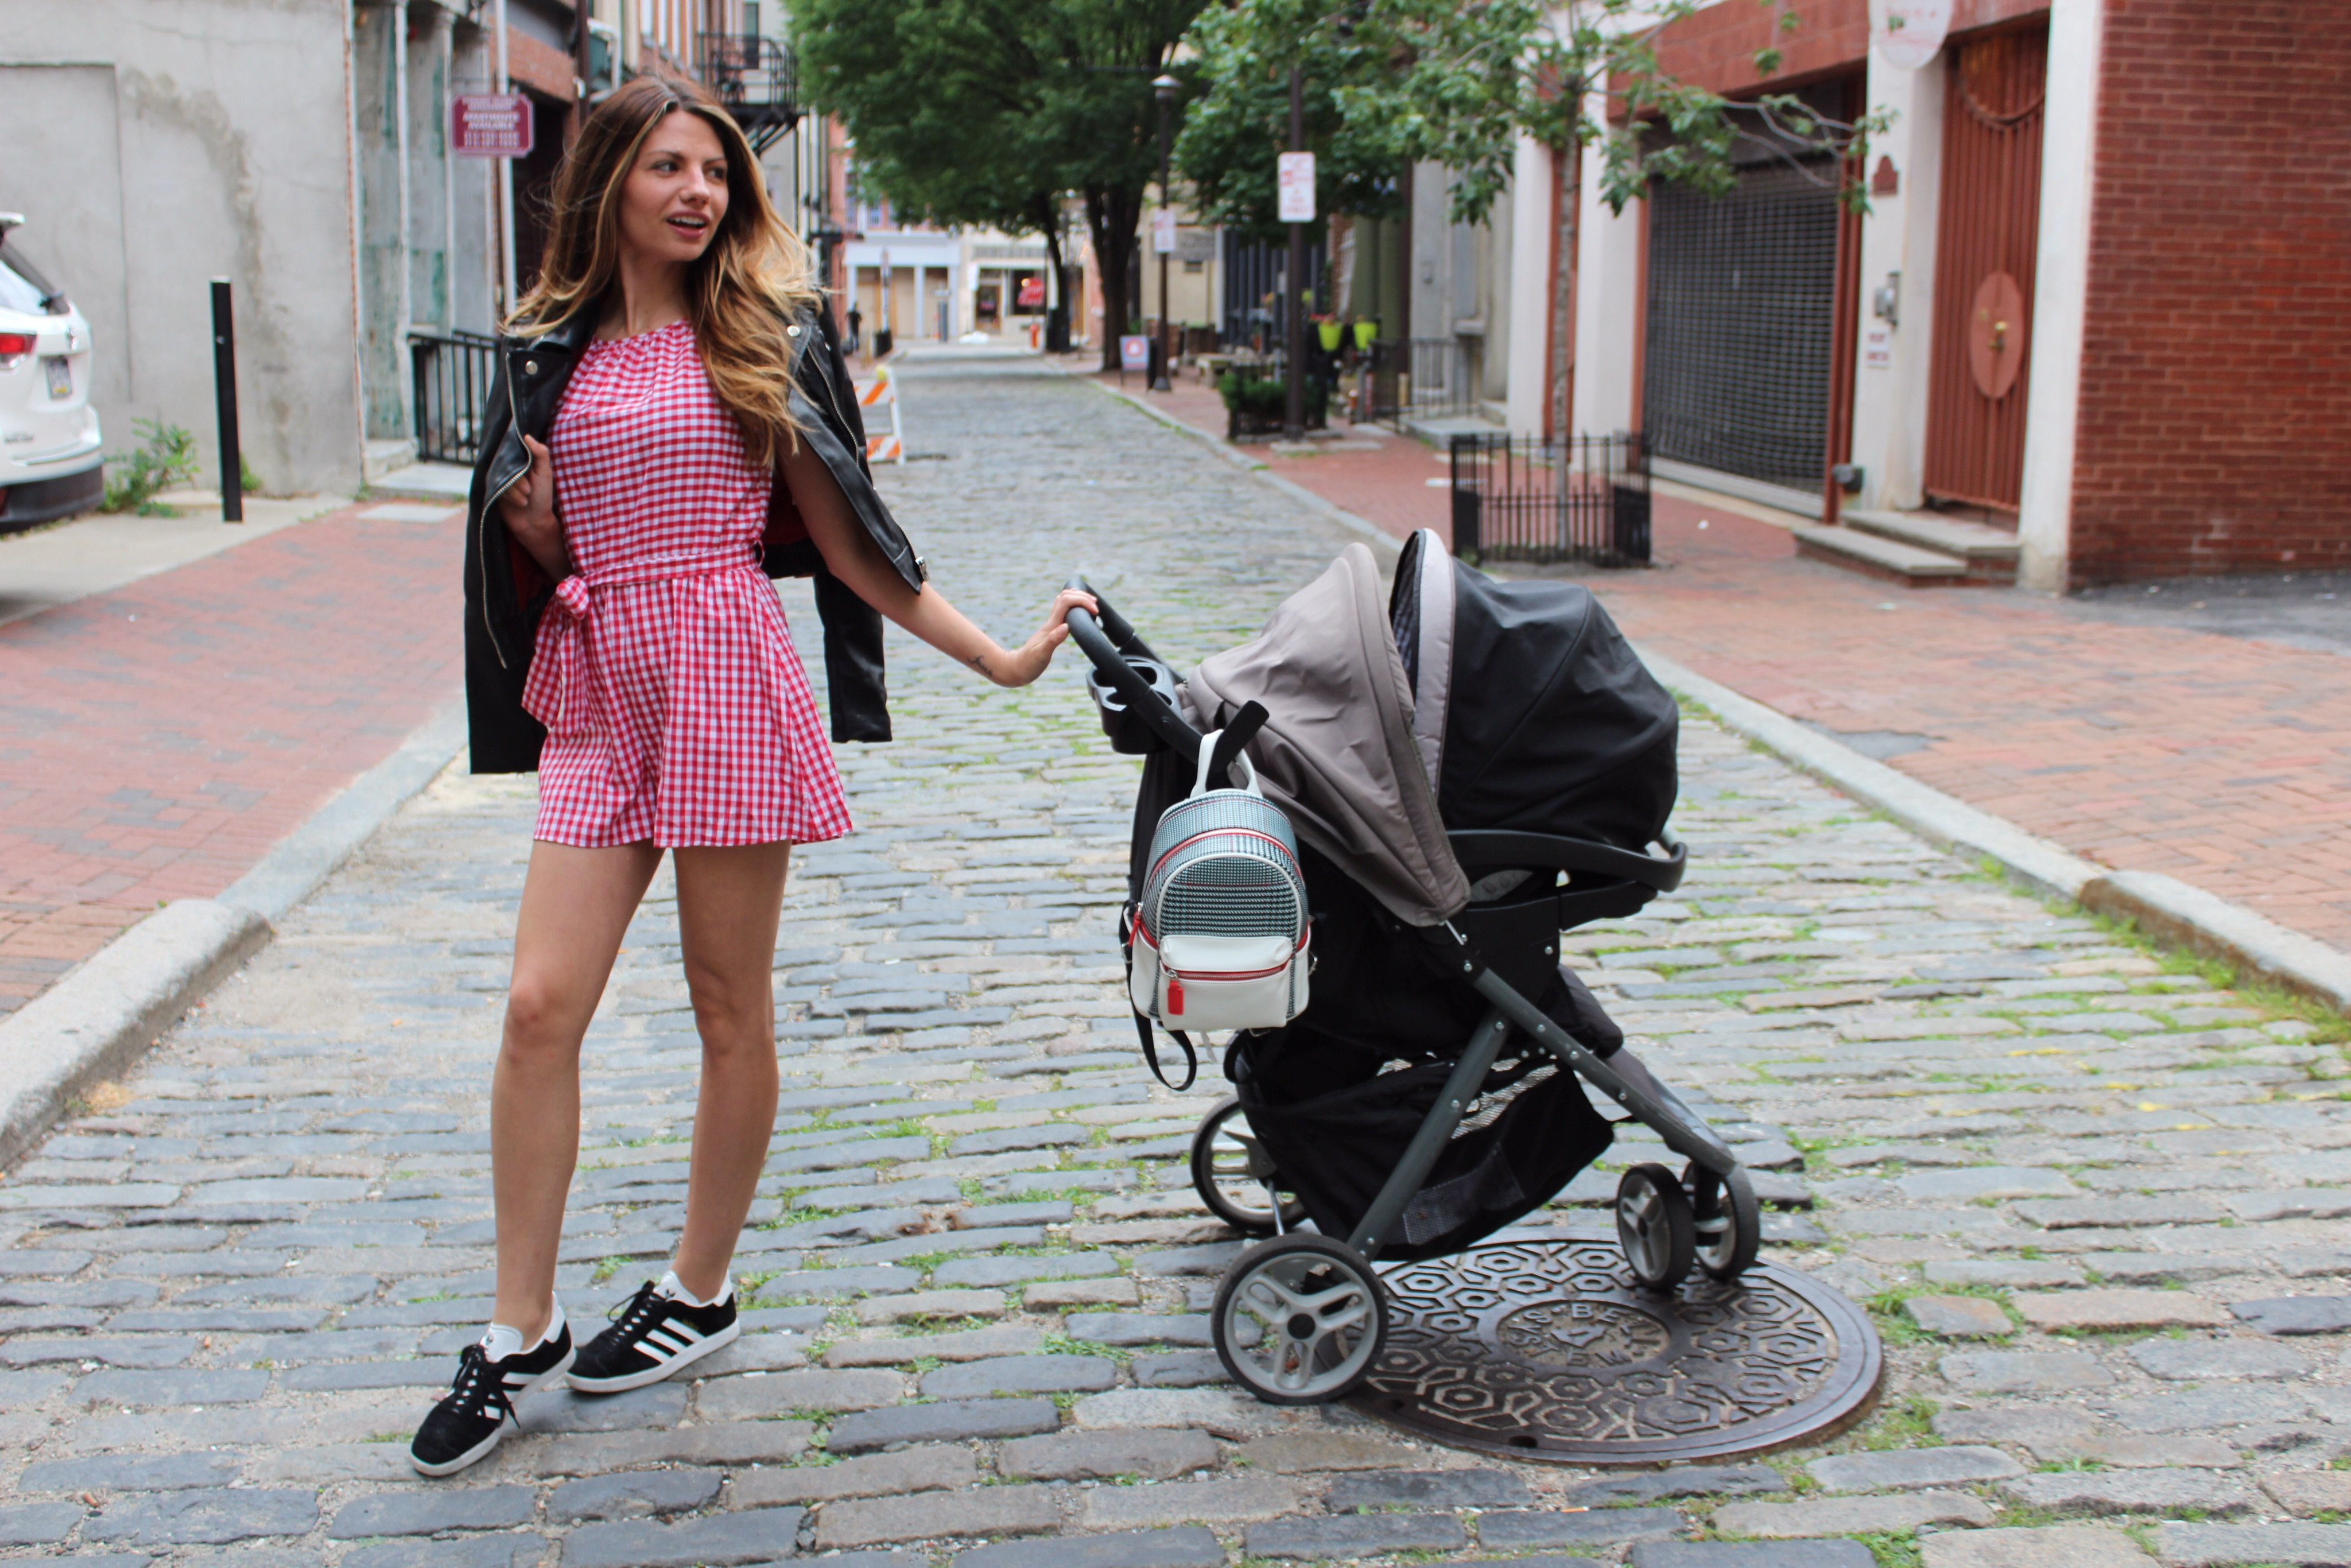 Lifestyle Blogger Chocolate and Lace shares what it's like raising kids in a city.